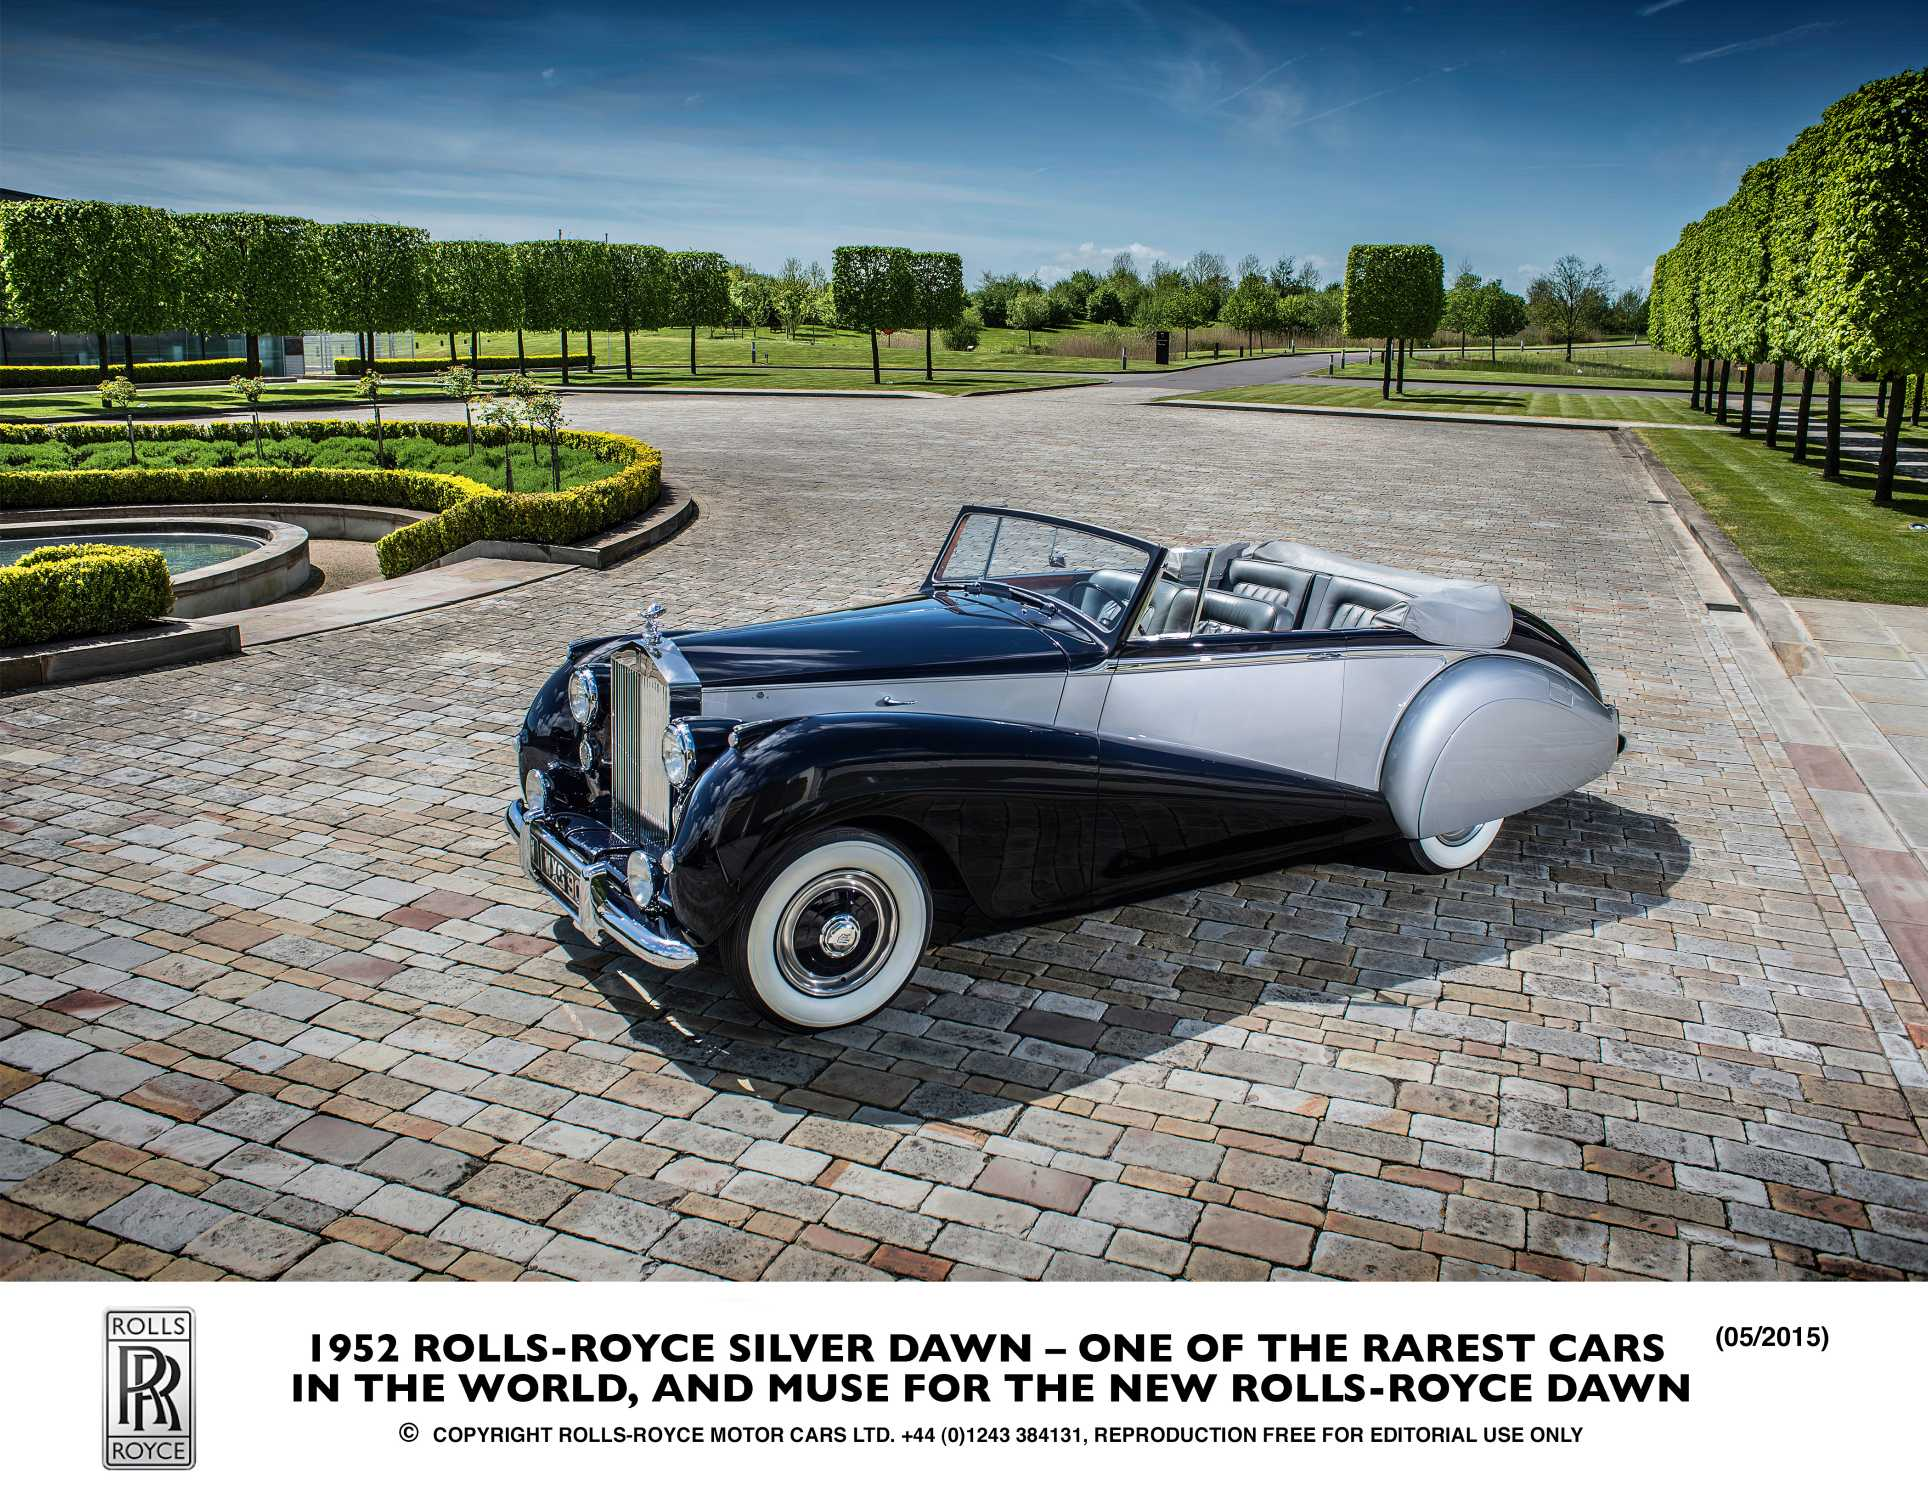 1952 ROLLS-ROYCE SILVER DAWN - ONE OF THE RAREST CARS IN THE WORLD ...